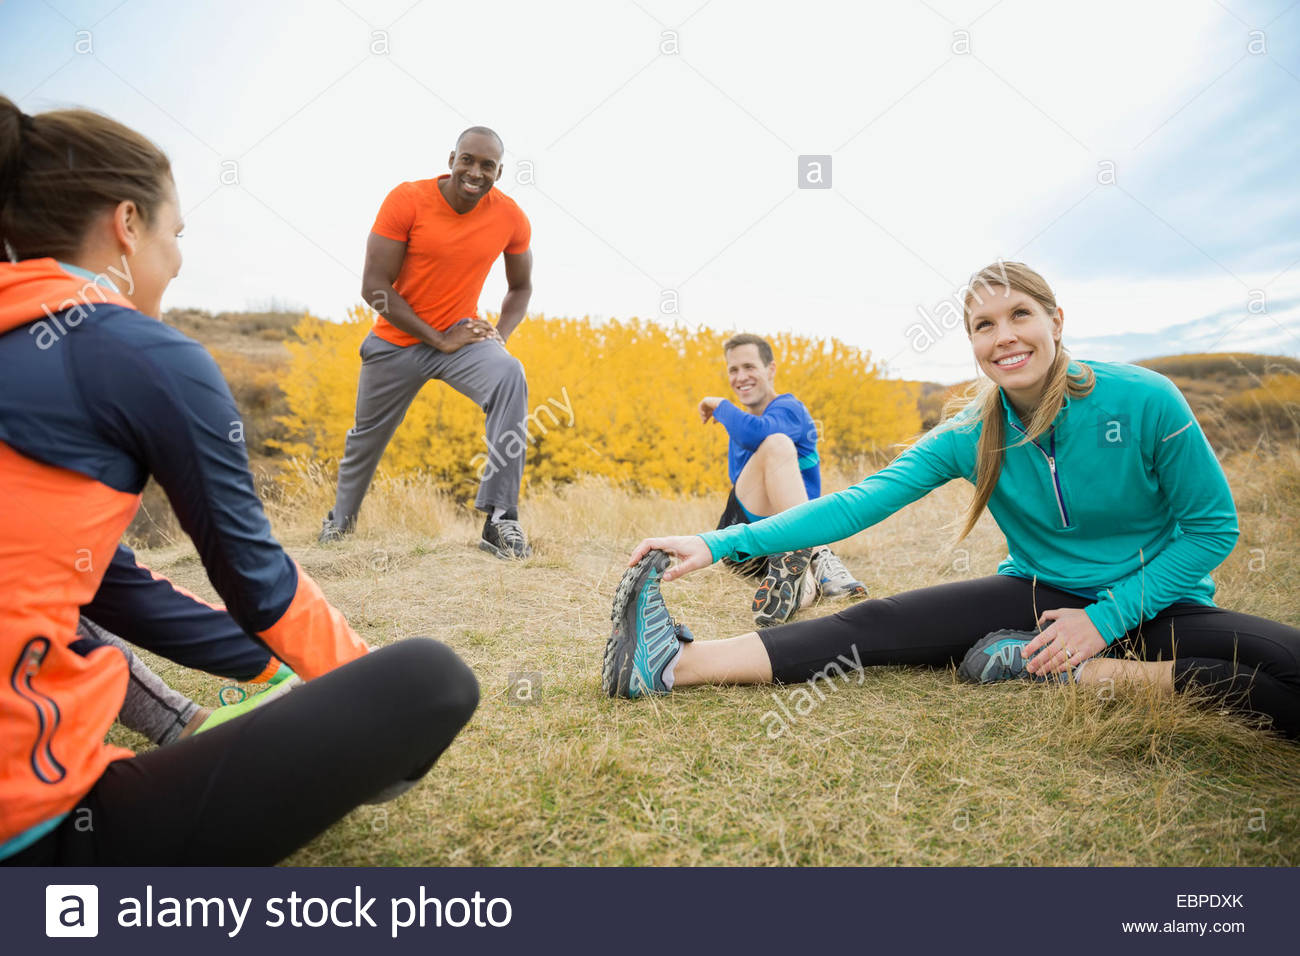 Runners stretching in field - Stock Image